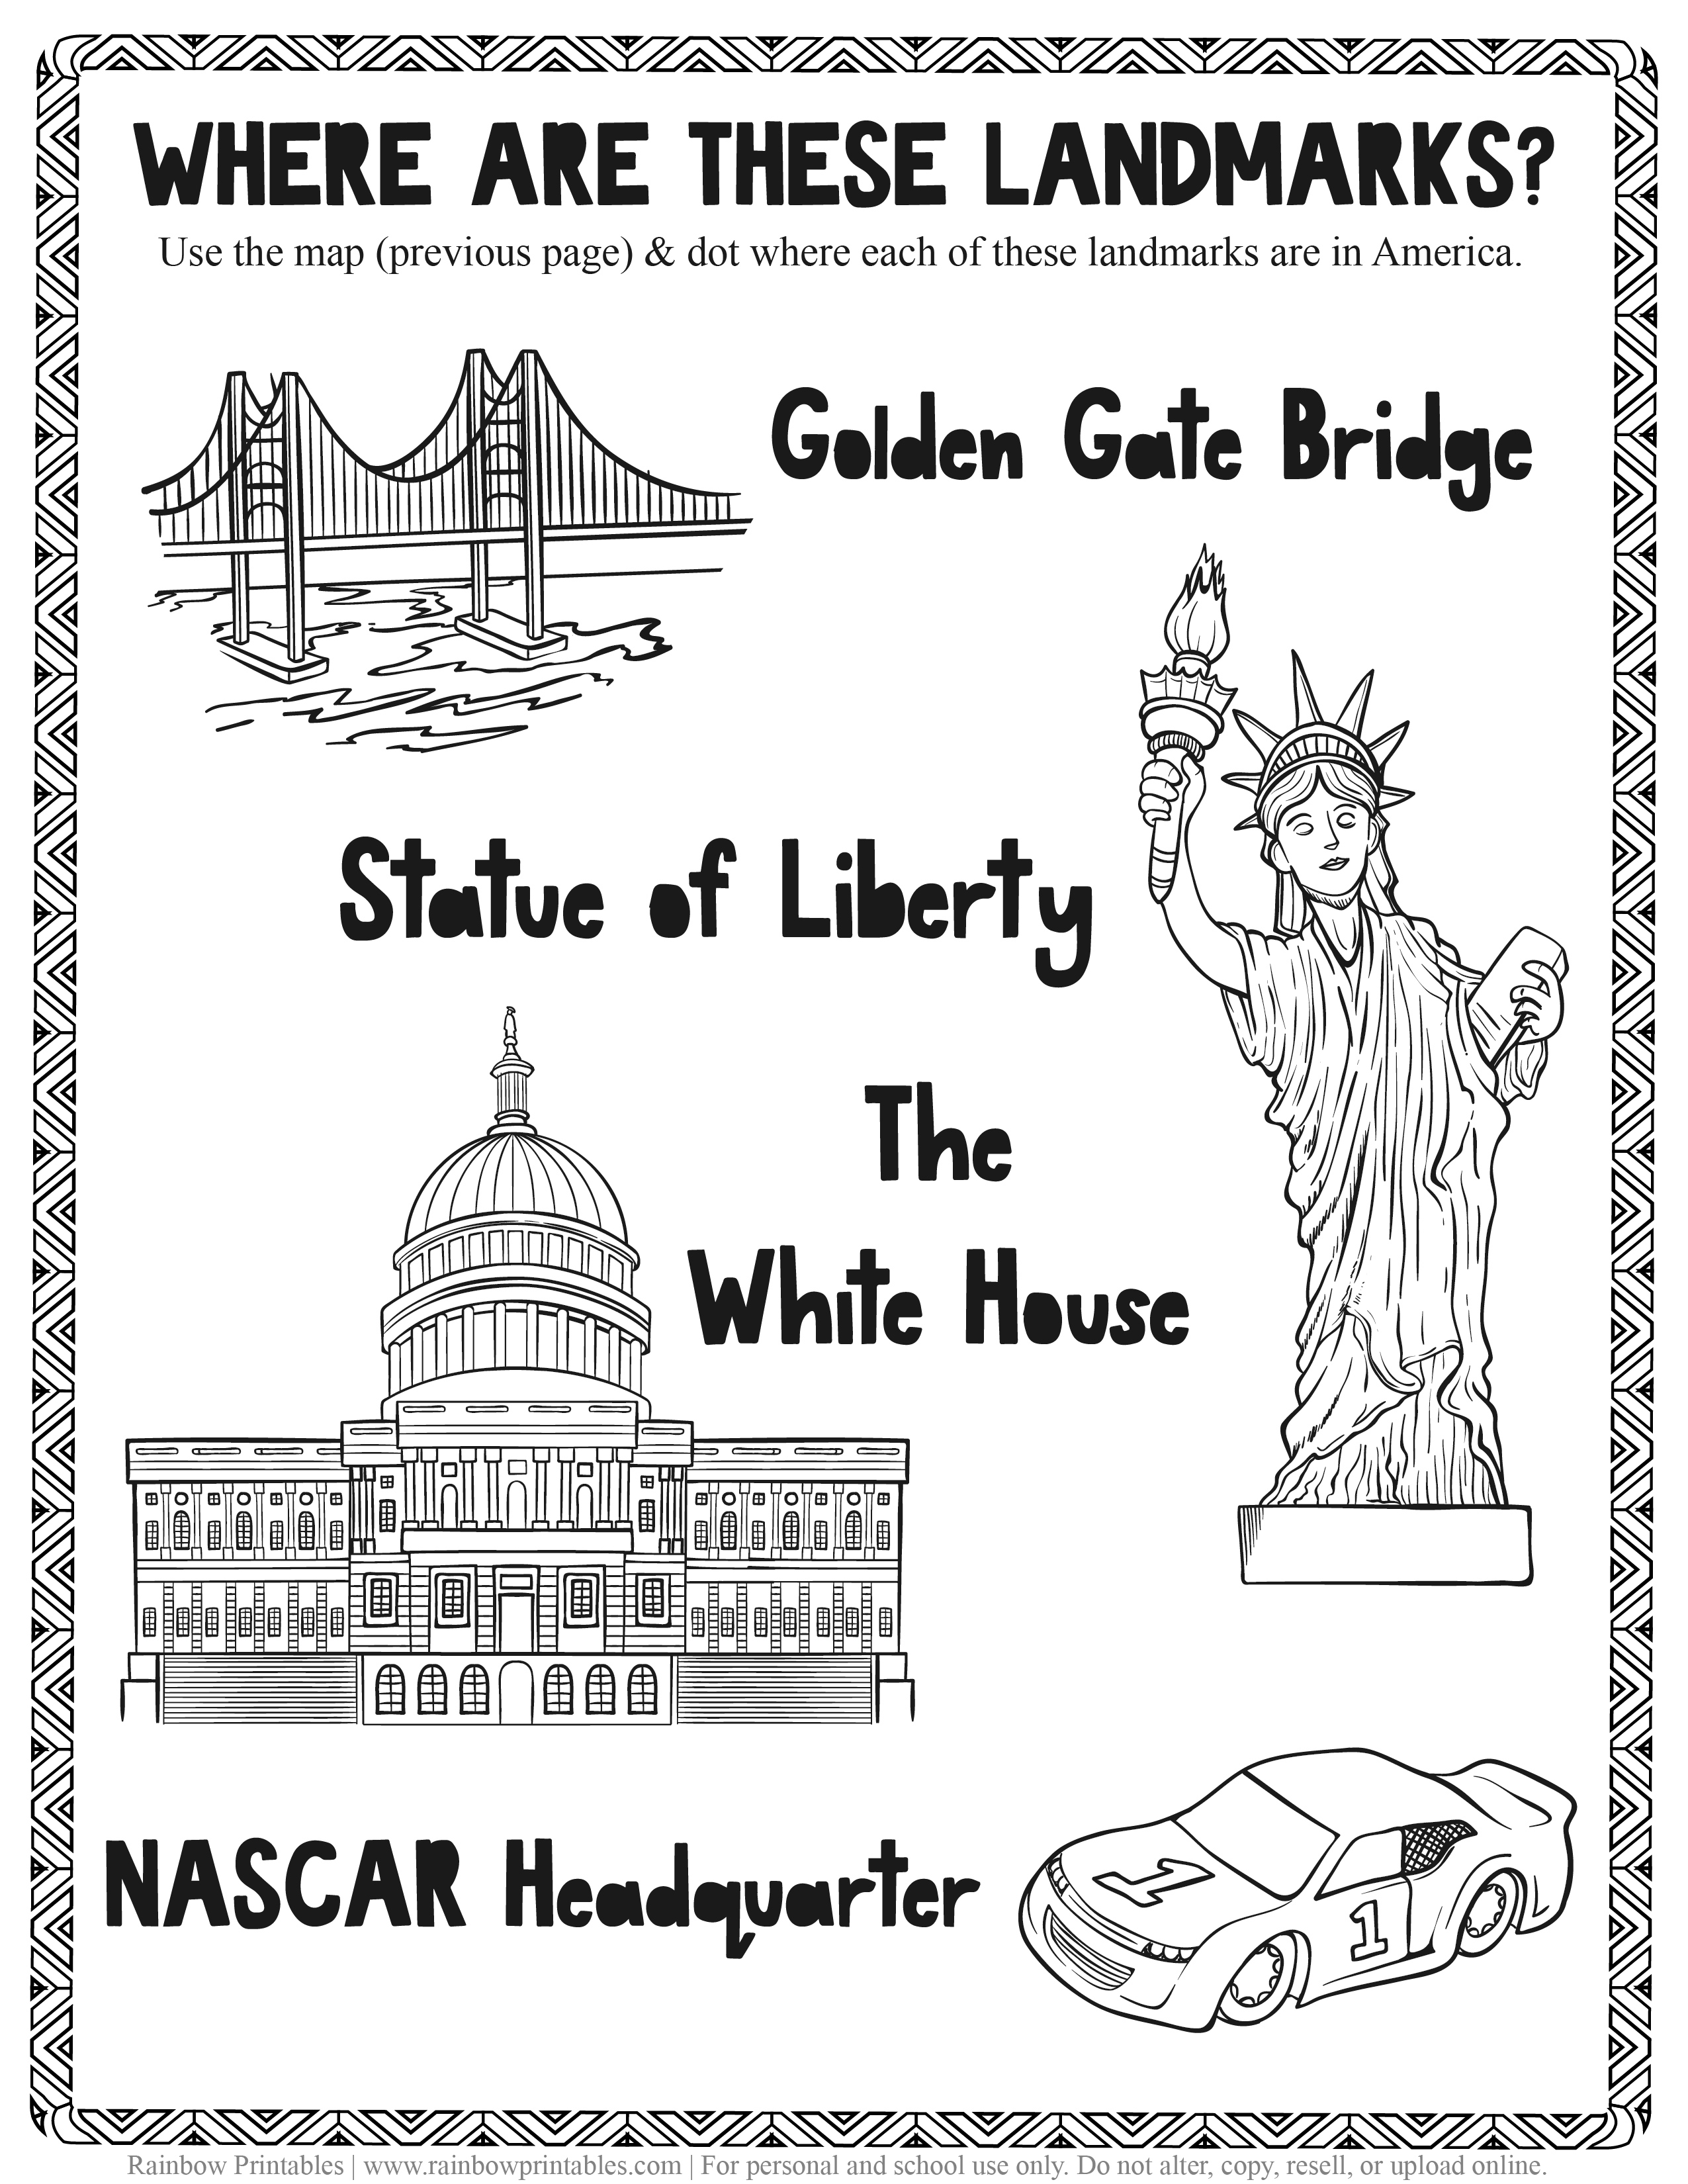 American Famous Landmarks Worksheet Geography Quiz Kids Patriotic July 4th independence Day Printables for Children, Toddlers, America Coloring Pages, Activity